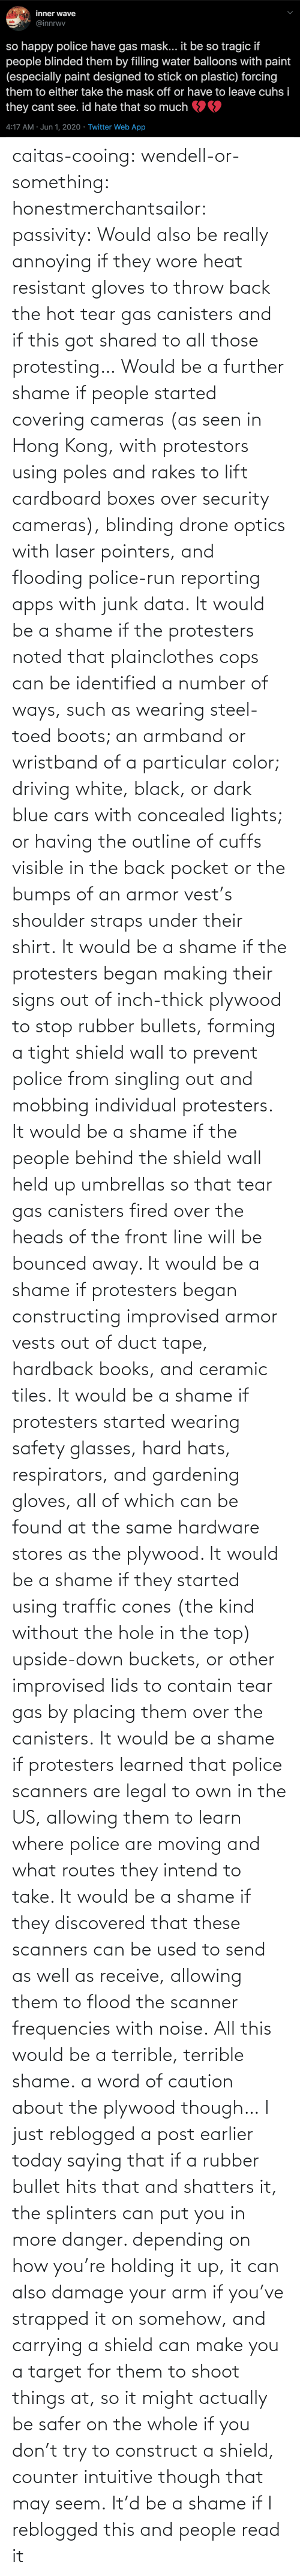 books: caitas-cooing:  wendell-or-something: honestmerchantsailor:  passivity: Would also be really annoying if they wore heat resistant gloves to throw back the hot tear gas canisters and if this got shared to all those protesting… Would be a further shame if people started covering cameras (as seen in Hong Kong, with protestors using poles and rakes to lift cardboard boxes over security cameras), blinding drone optics with laser pointers, and flooding police-run reporting apps with junk data. It would be a shame if the protesters noted that plainclothes cops can be identified a number of ways, such as wearing steel-toed boots; an armband or wristband of a particular color; driving white, black, or dark blue cars with concealed lights; or having the outline of cuffs visible in the back pocket or the bumps of an armor vest's shoulder straps under their shirt. It would be a shame if the protesters began making their signs out of inch-thick plywood to stop rubber bullets, forming a tight shield wall to prevent police from singling out and mobbing individual protesters. It would be a shame if the people behind the shield wall held up umbrellas so that tear gas canisters fired over the heads of the front line will be bounced away. It would be a shame if protesters began constructing improvised armor vests out of duct tape, hardback books, and ceramic tiles. It would be a shame if protesters started wearing safety glasses, hard hats, respirators, and gardening gloves, all of which can be found at the same hardware stores as the plywood. It would be a shame if they started using traffic cones (the kind without the hole in the top) upside-down buckets, or other improvised lids to contain tear gas by placing them over the canisters. It would be a shame if protesters learned that police scanners are legal to own in the US, allowing them to learn where police are moving and what routes they intend to take. It would be a shame if they discovered that these scanners can be used to send as well as receive, allowing them to flood the scanner frequencies with noise. All this would be a terrible, terrible shame.    a word of caution about the plywood though… I just reblogged a post earlier today saying that if a rubber bullet hits that and shatters it, the splinters can put you in more danger. depending on how you're holding it up, it can also damage your arm if you've strapped it on somehow, and carrying a shield can make you a target for them to shoot things at, so it might actually be safer on the whole if you don't try to construct a shield, counter intuitive though that may seem.    It'd be a shame if I reblogged this and people read it